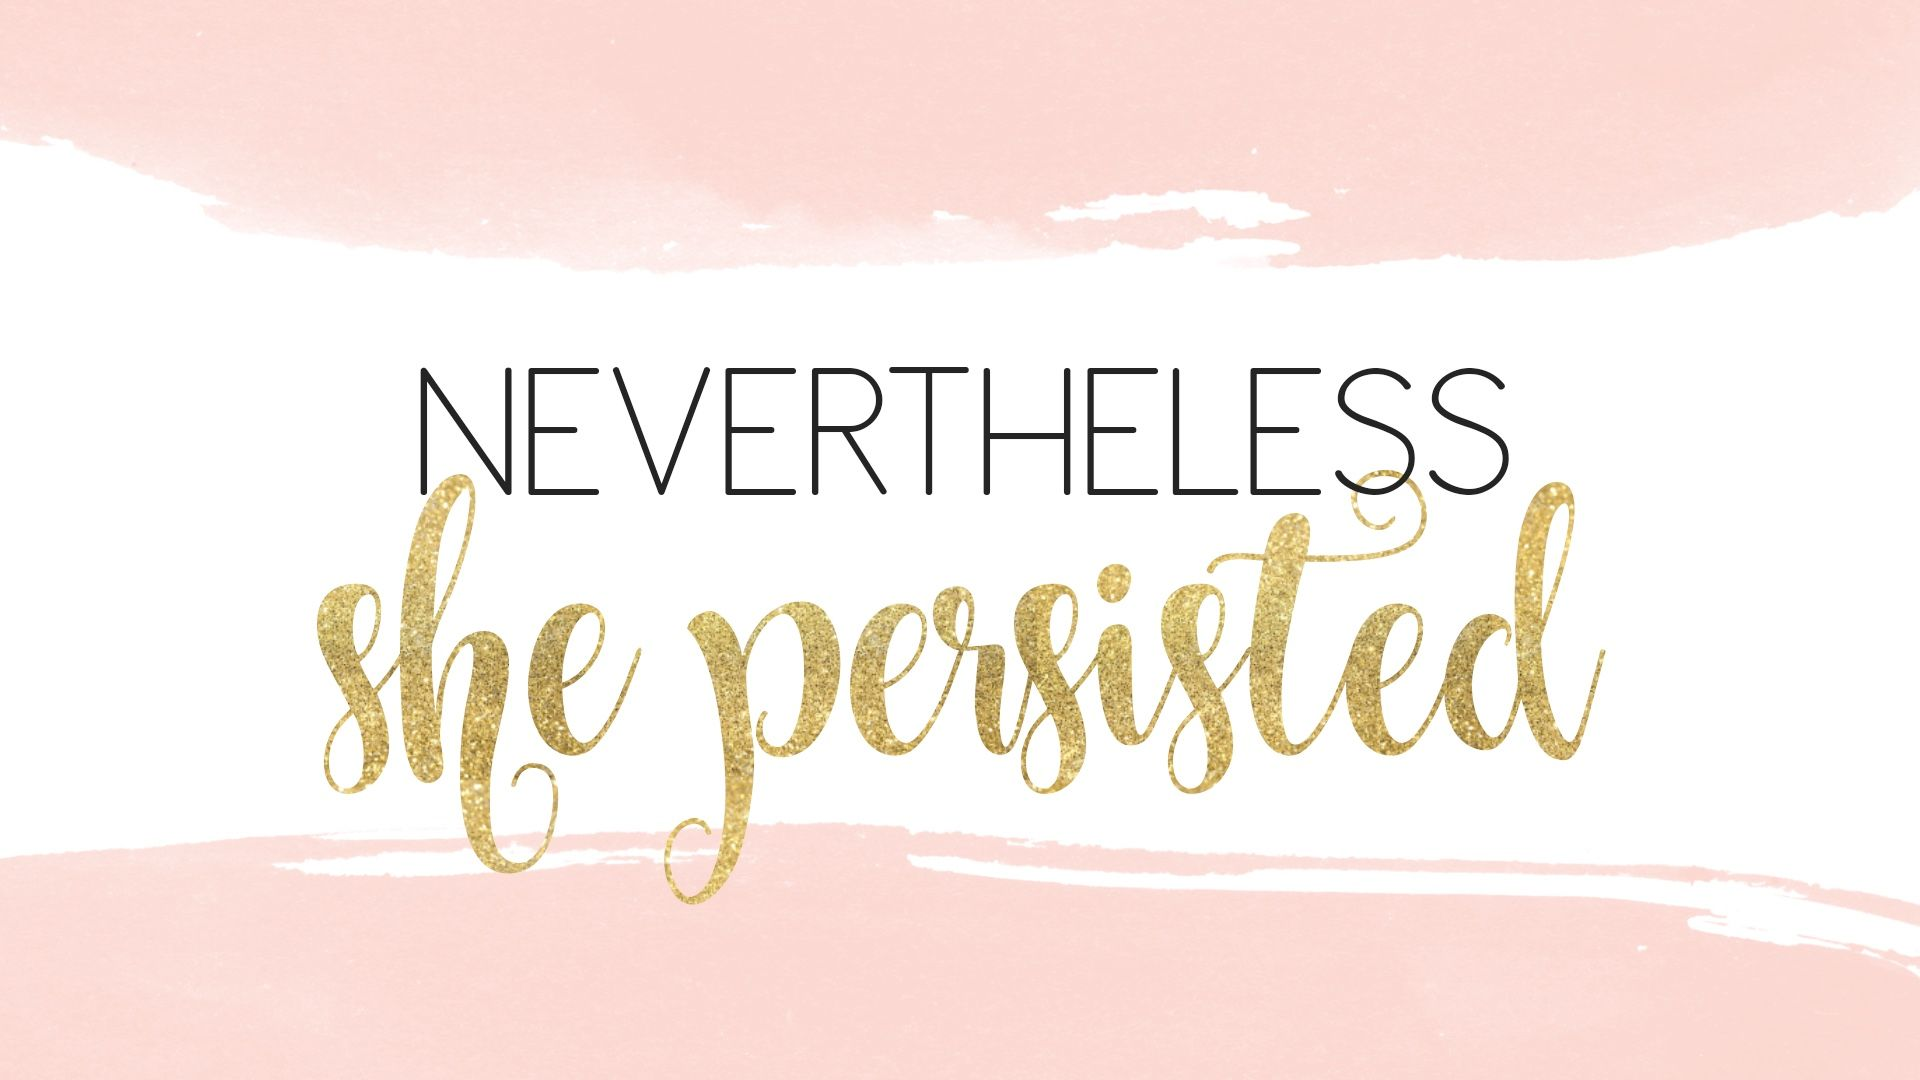 Pin By Nicole Nark On New Desktop Background Quote Inspirational Desktop Wallpaper Inspirational Wallpapers